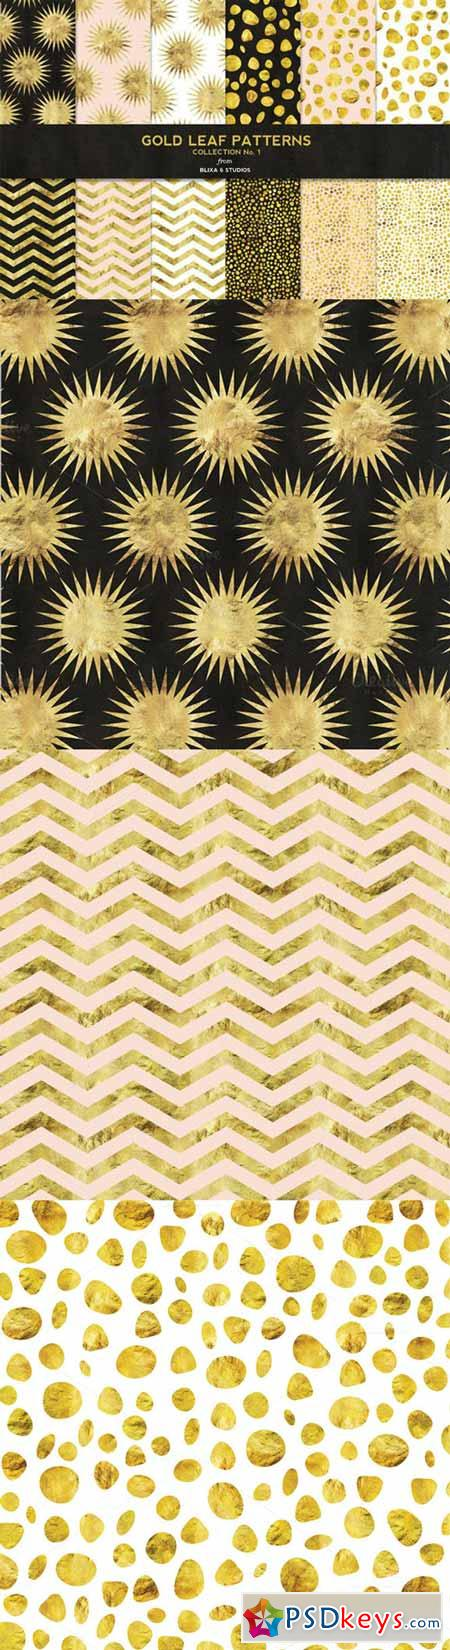 Gold Leaf Digital Patterns No. 1 136714